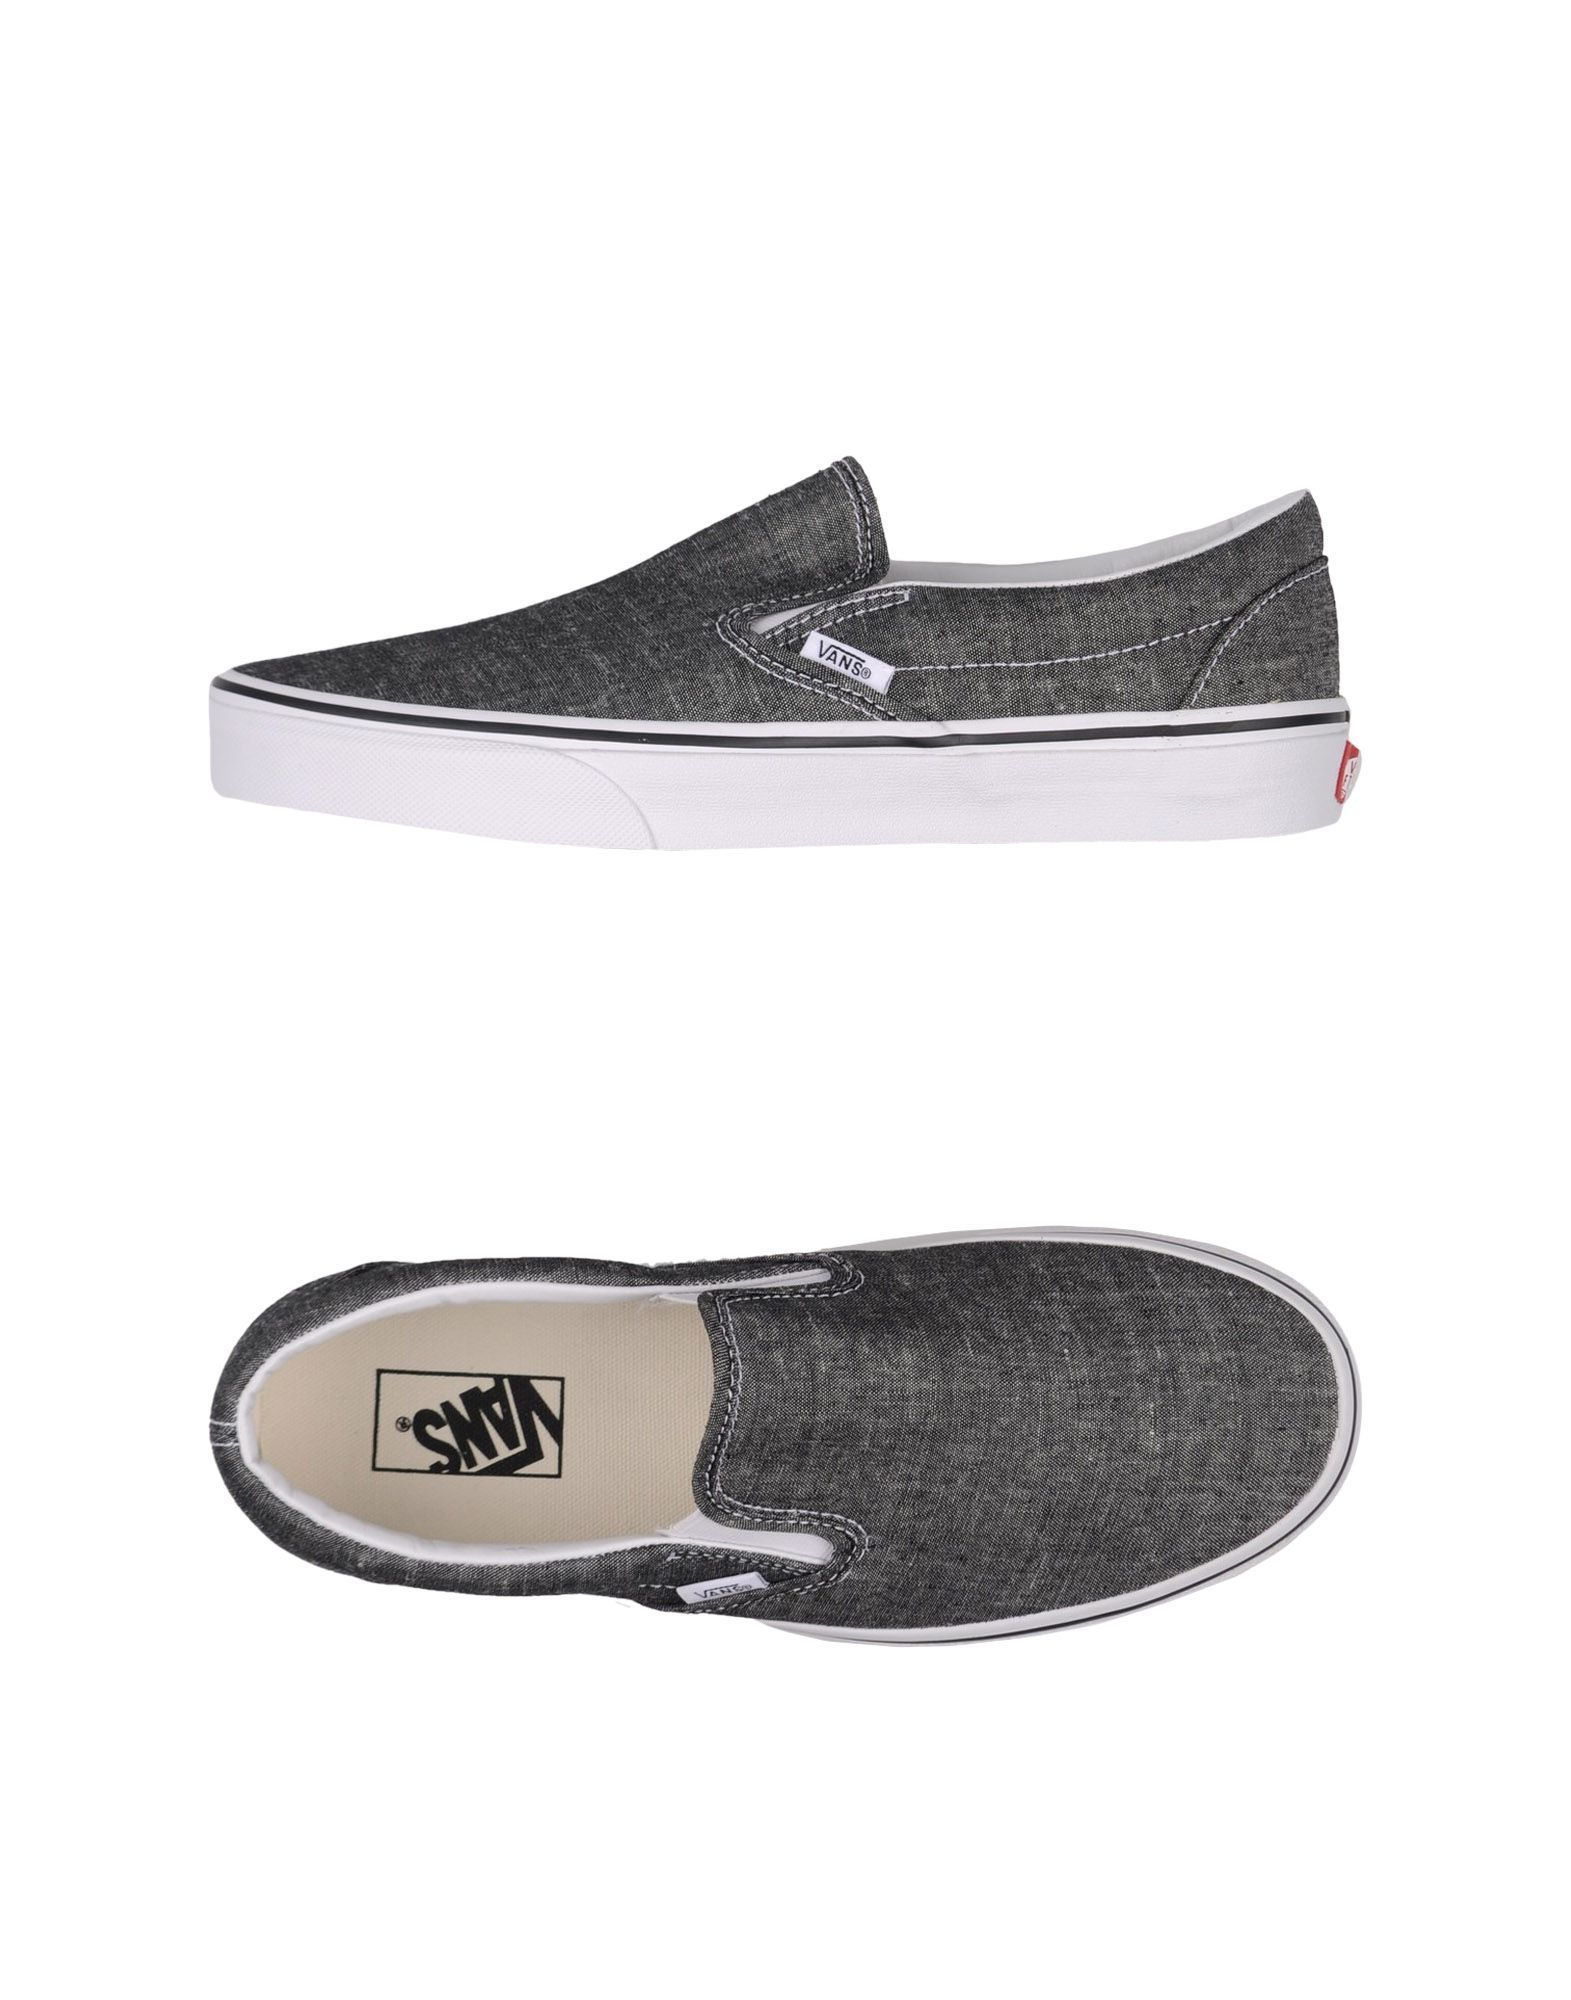 8343877c25 Vans Men - Footwear - Low-tops Vans on YOOX